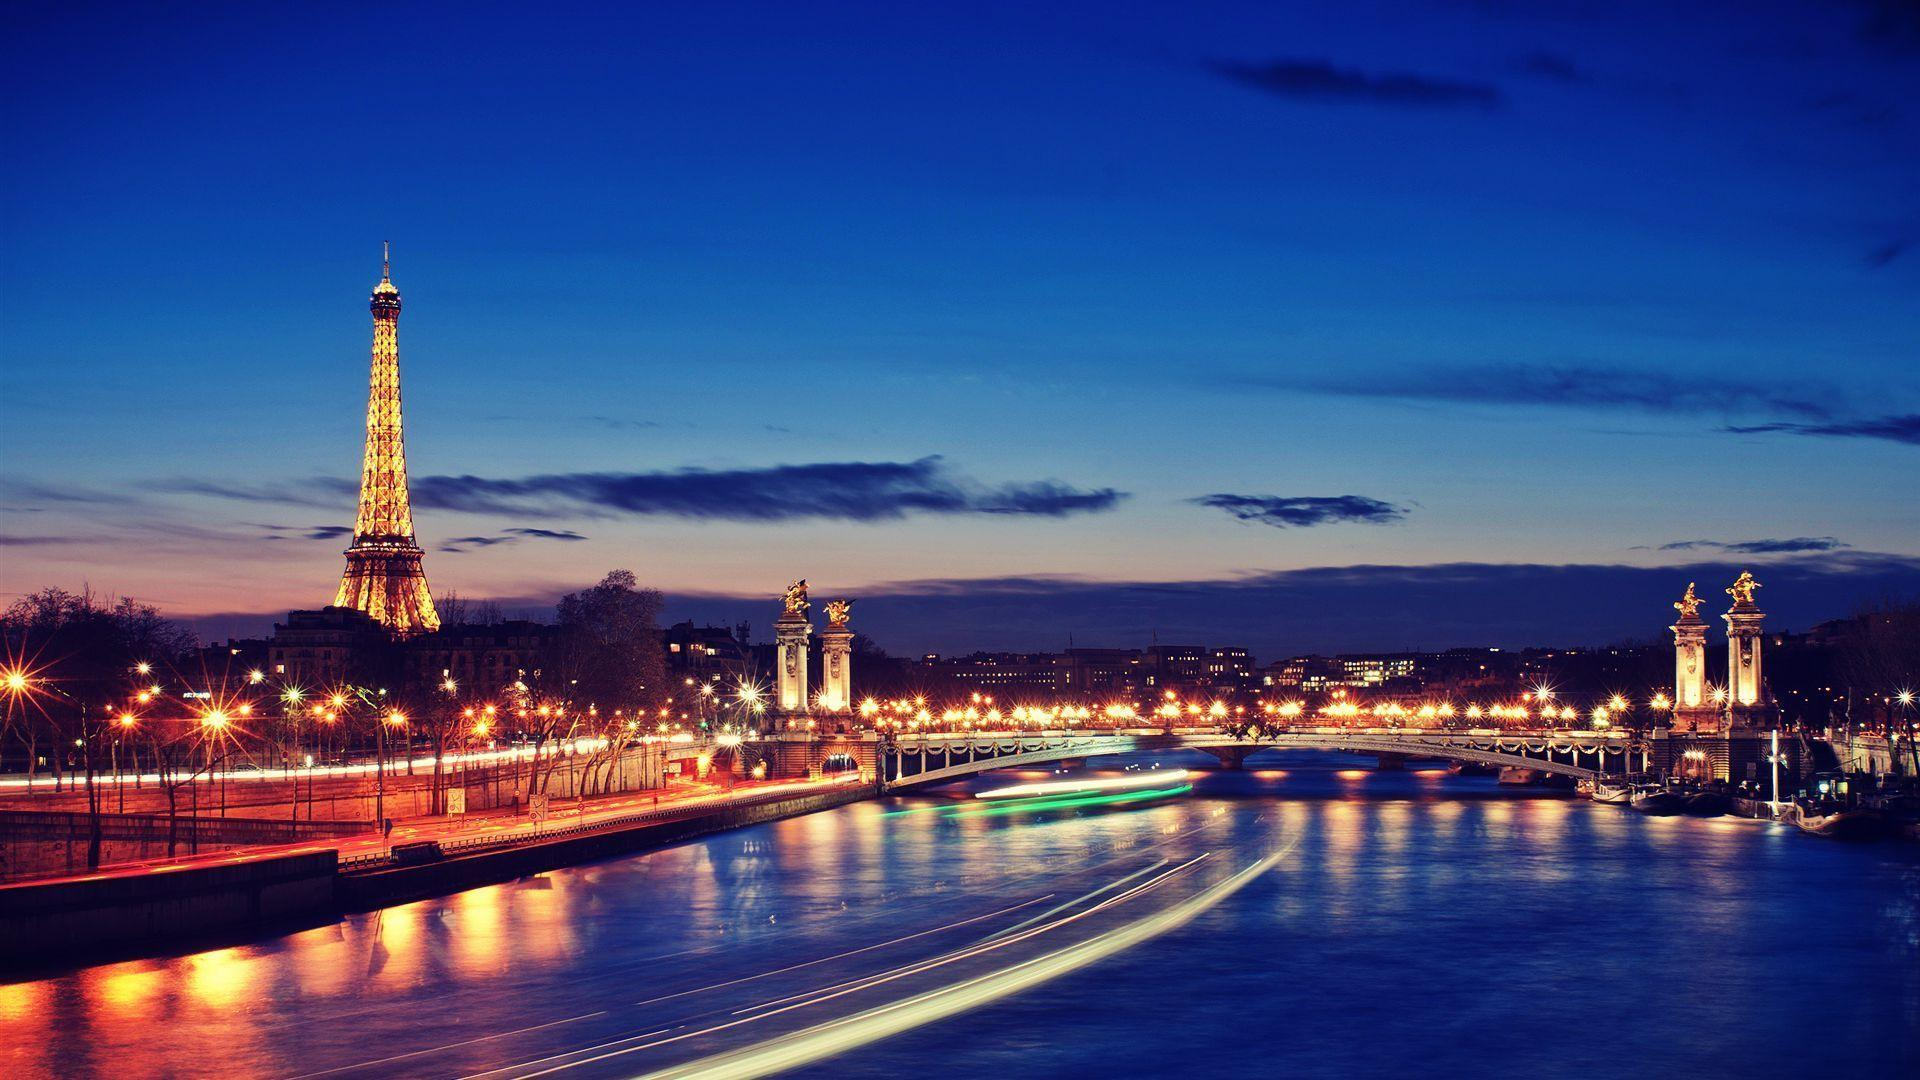 1080p HD Wallpaper Paris at Night Picture | HD Wallpapers